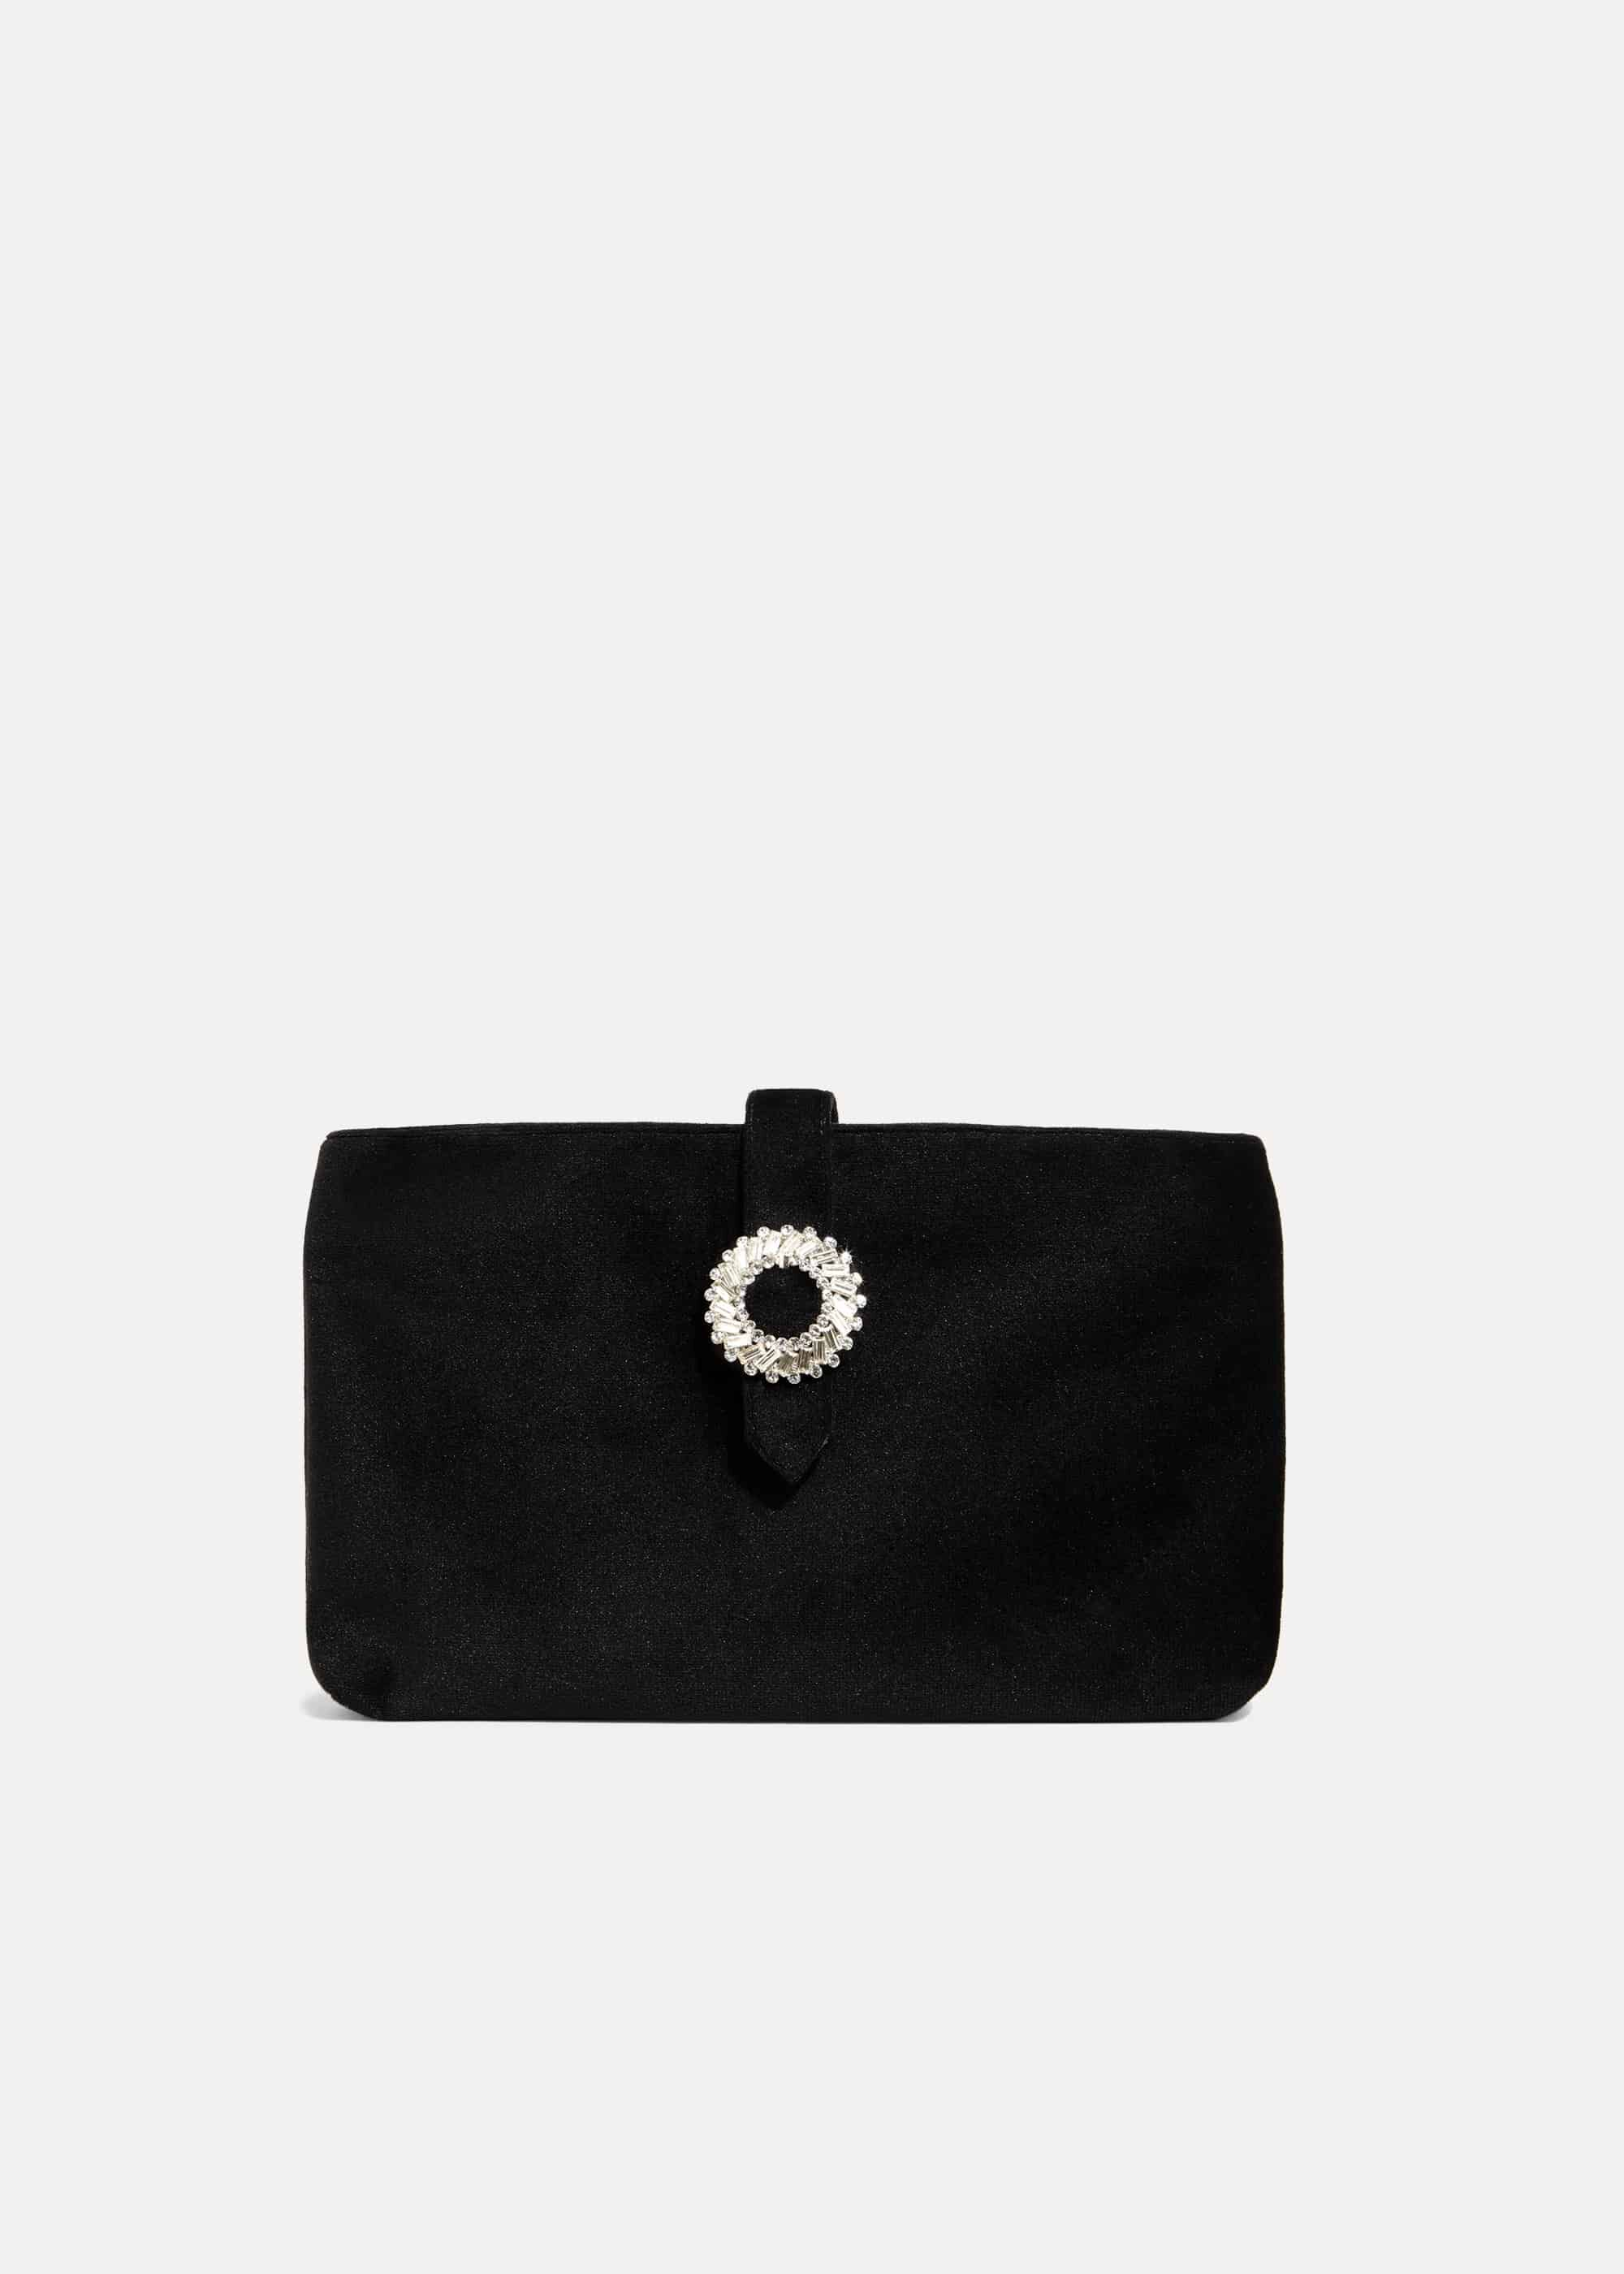 Phase Eight Cat Velvet Jewel Clutch Bag, Black, Bag